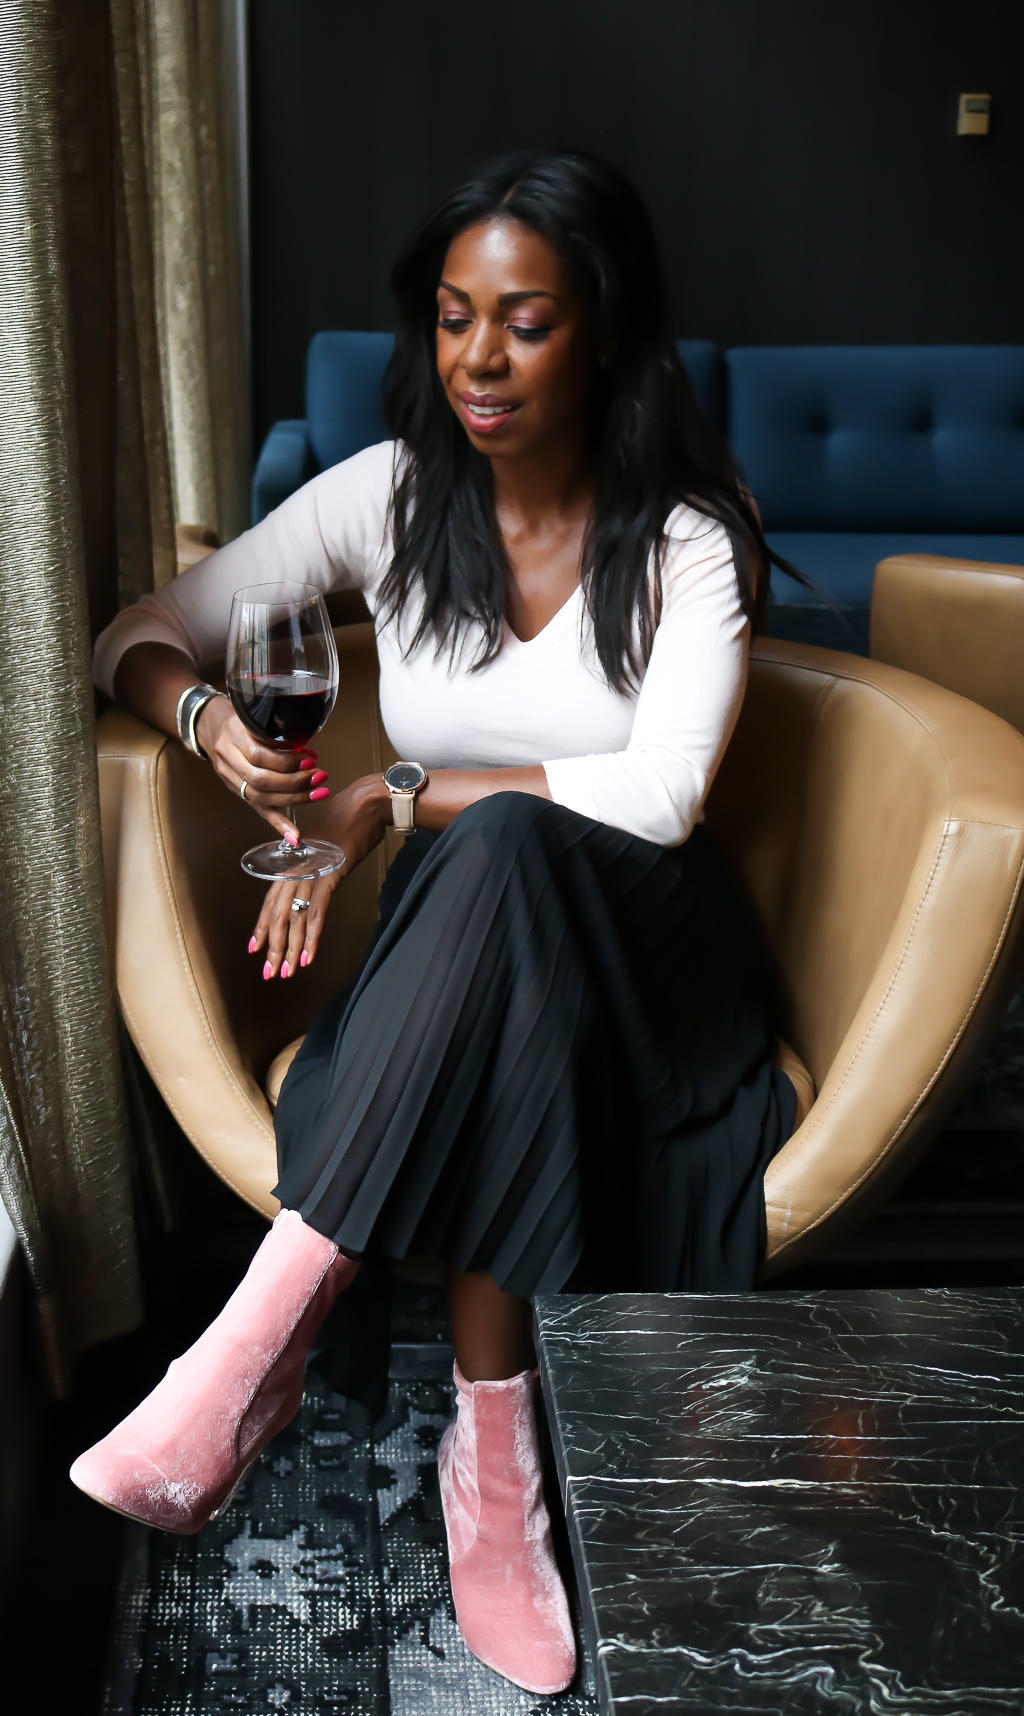 Need some style inspiration for Ottawa's Wine & Food Festival? I have some ideas to help you out!